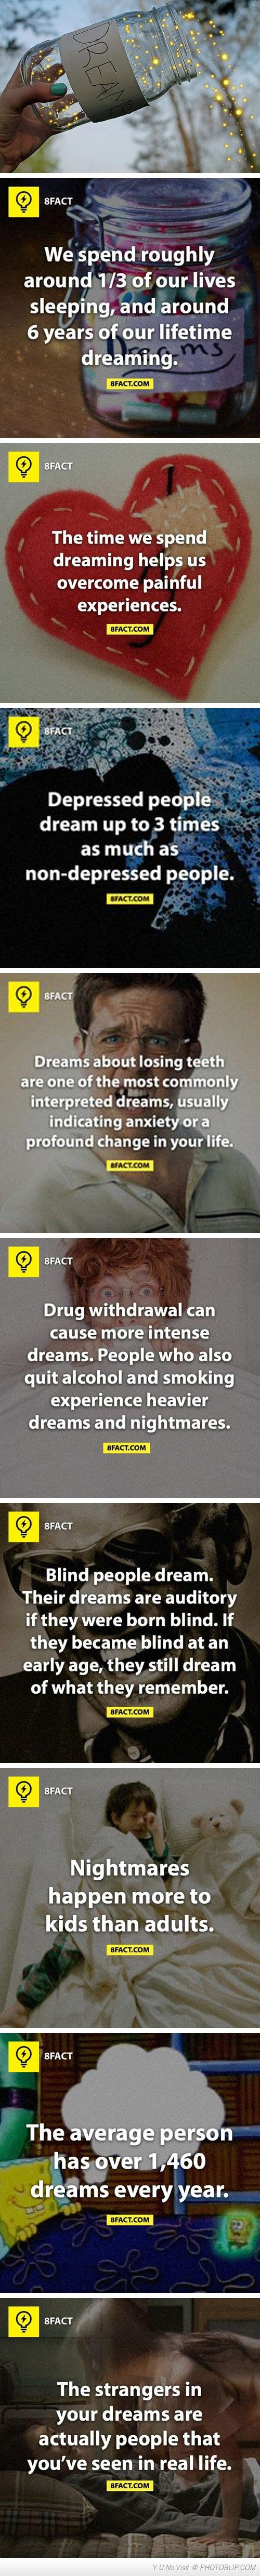 Some Mind Blowing Facts About Dreams